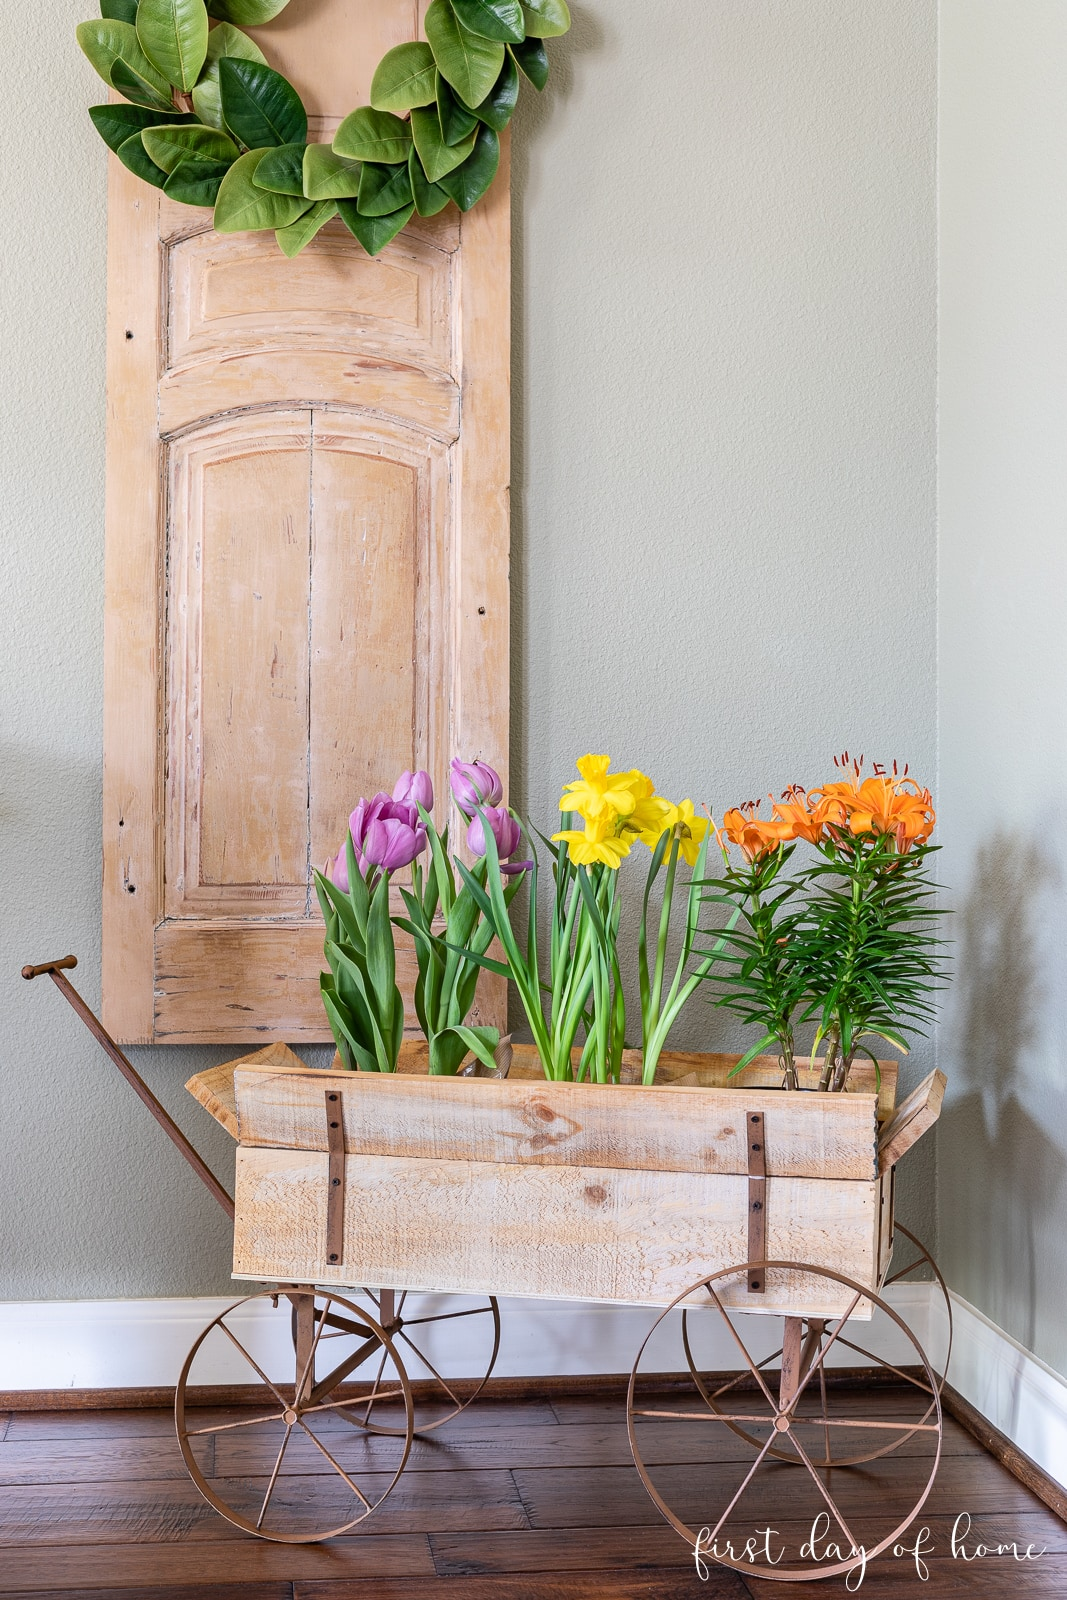 Four-wheeled decorative cart filled with tulips and lillies